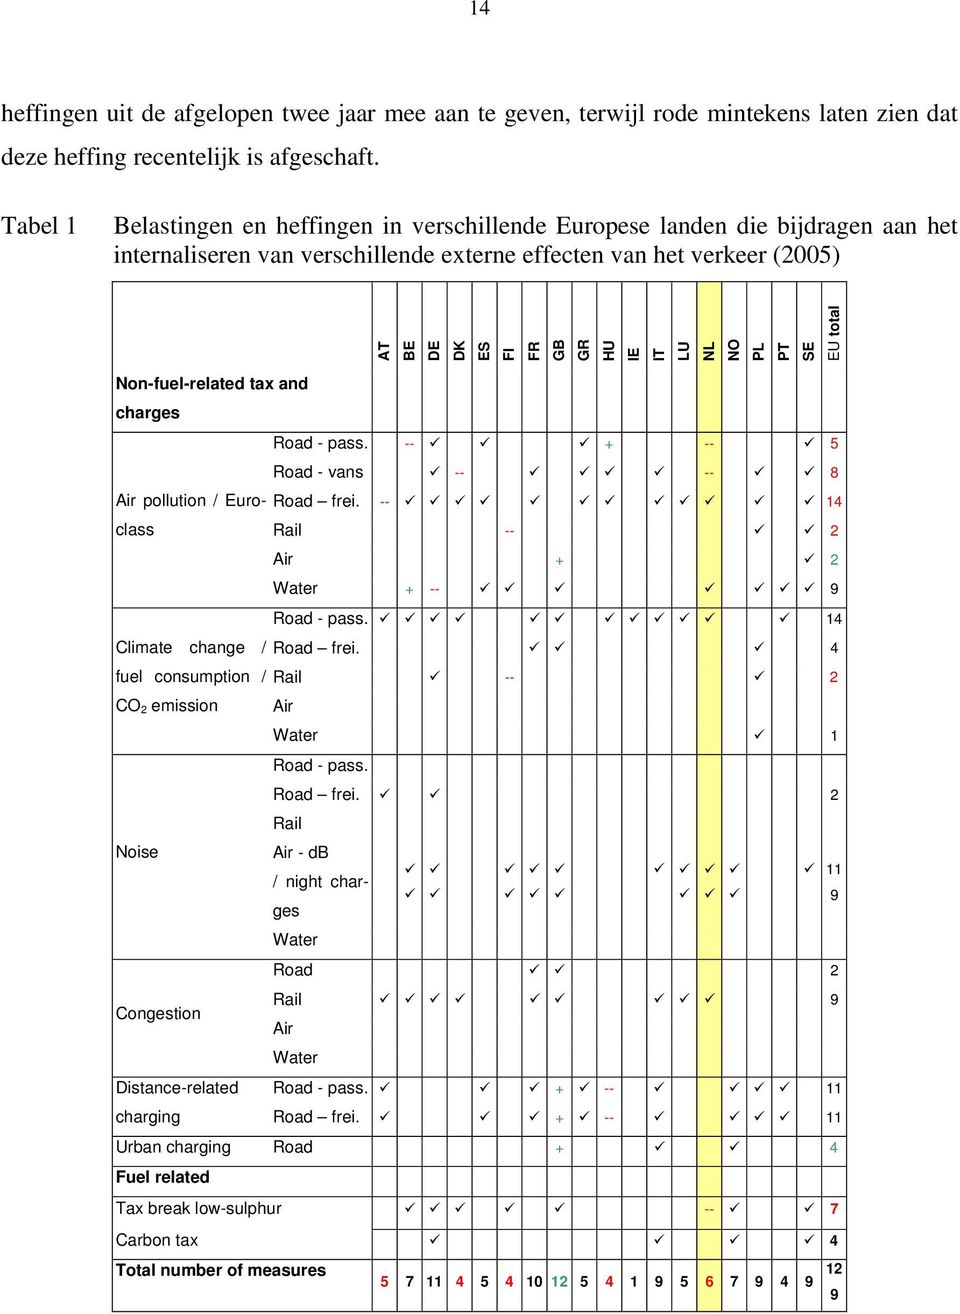 NL NO PL PT SE EU total Non-fuel-related tax and charges Road - pass. -- + -- 5 Road - vans -- -- 8 Air pollution / Euroclass Road frei. -- 14 Rail -- 2 Air + 2 Water + -- 9 Road - pass.